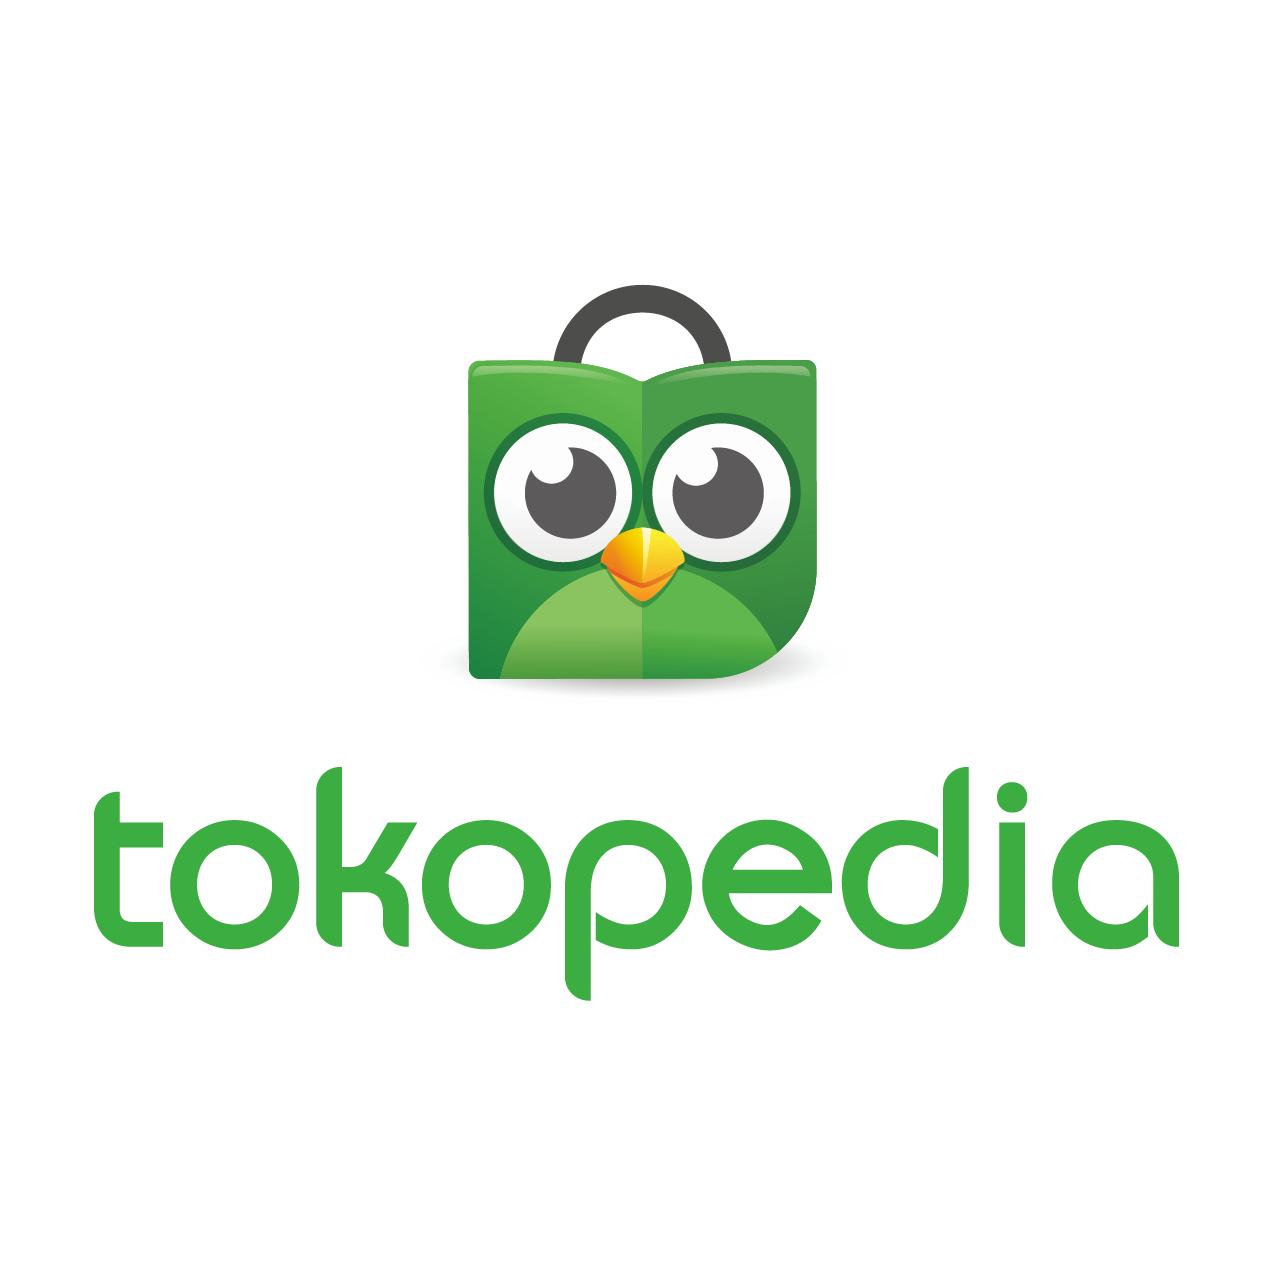 tokopedia logo vector free download ai eps cdr svg vektor and png file iconlogovector tokopedia logo vector free download